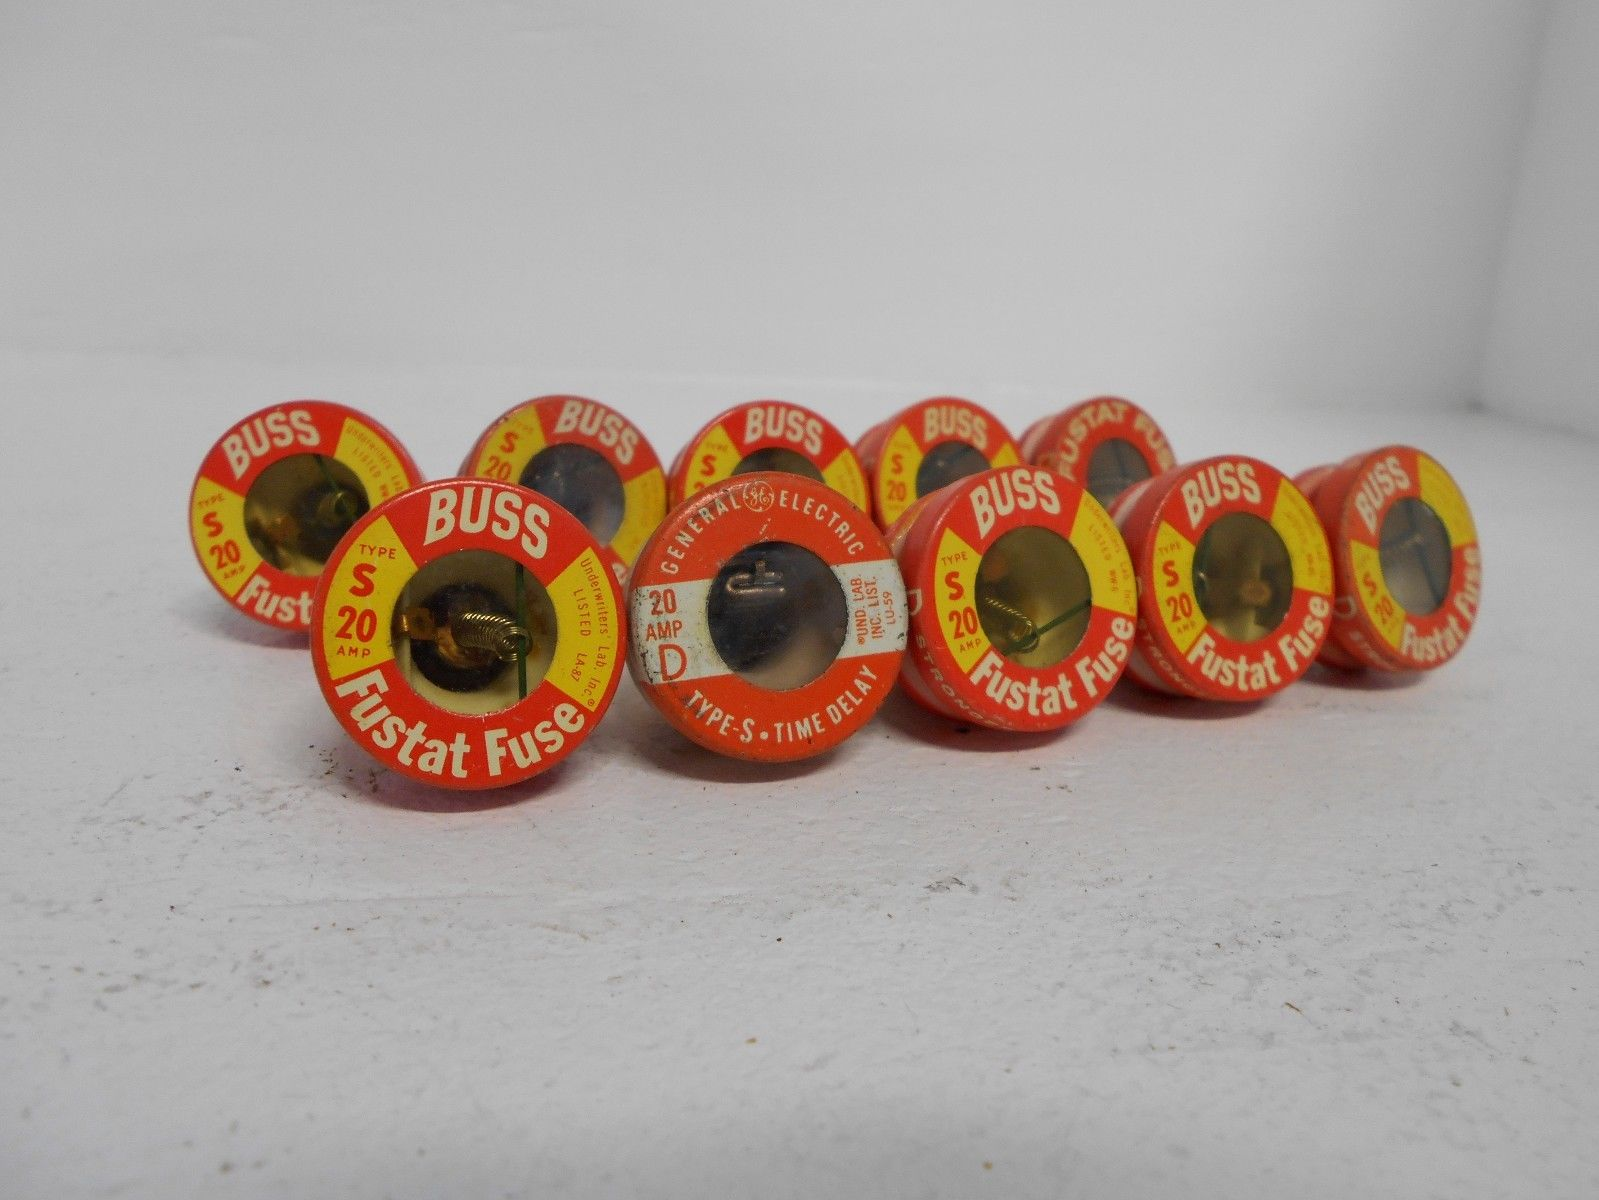 hight resolution of mix lot of 10 buss fustat ge fuse type s 20 amp